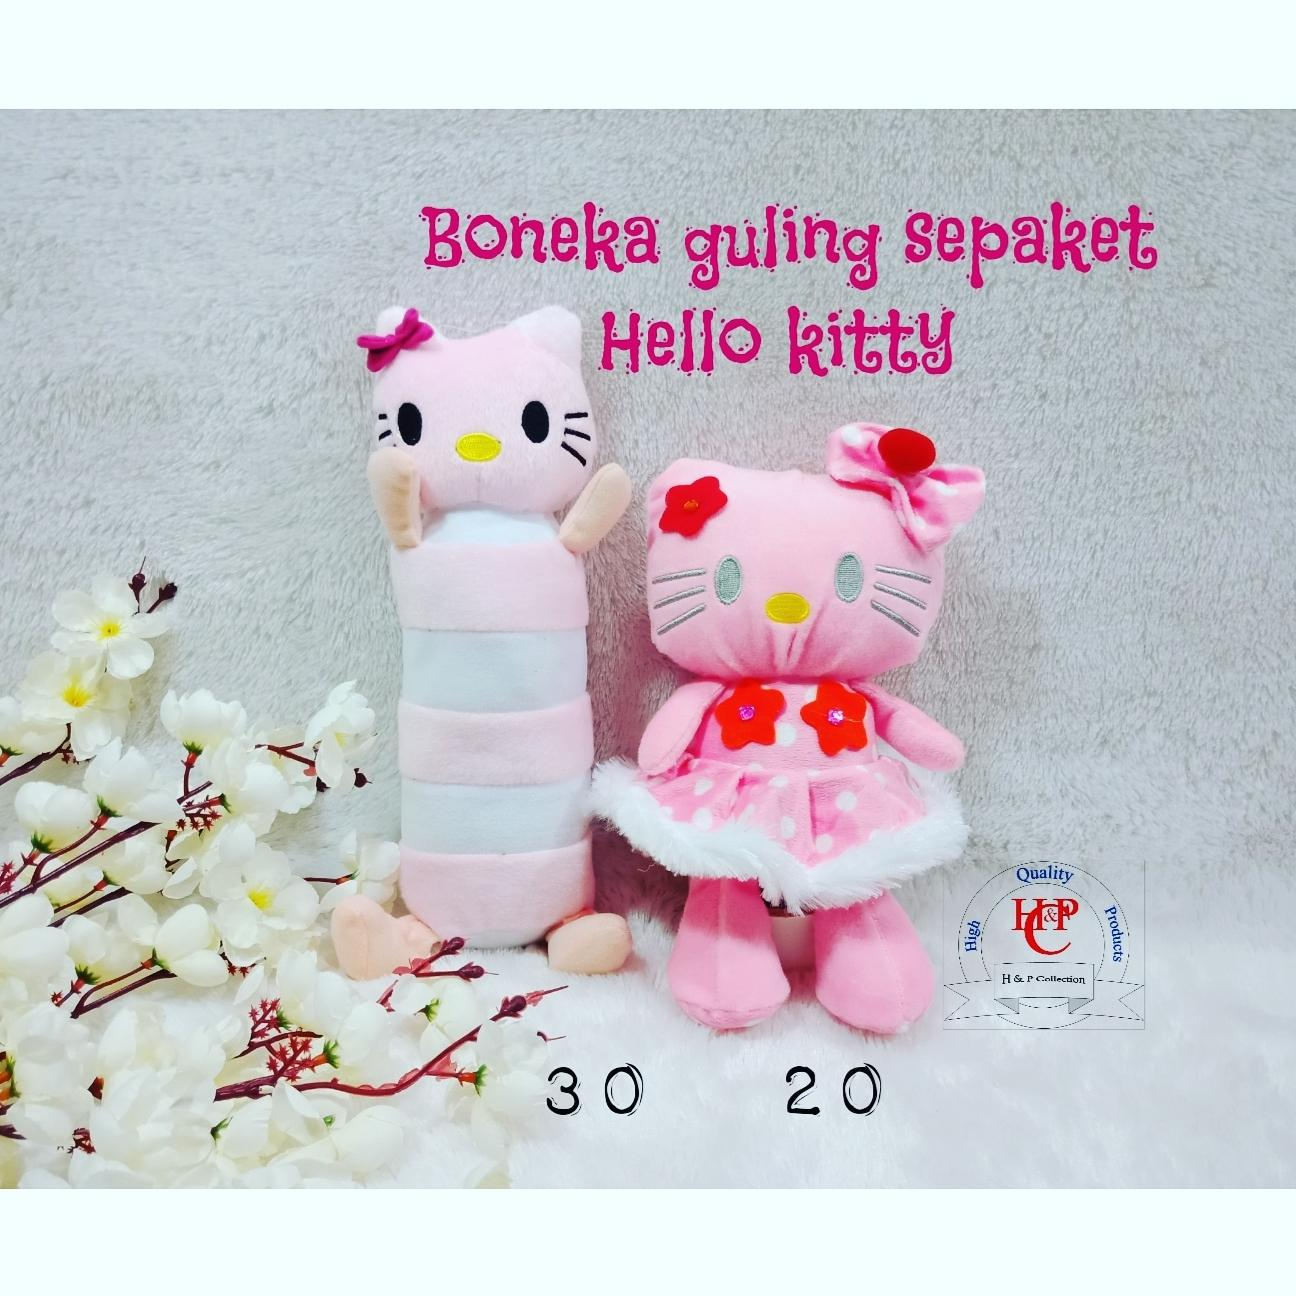 boneka S + guling Hello kitty sepaket